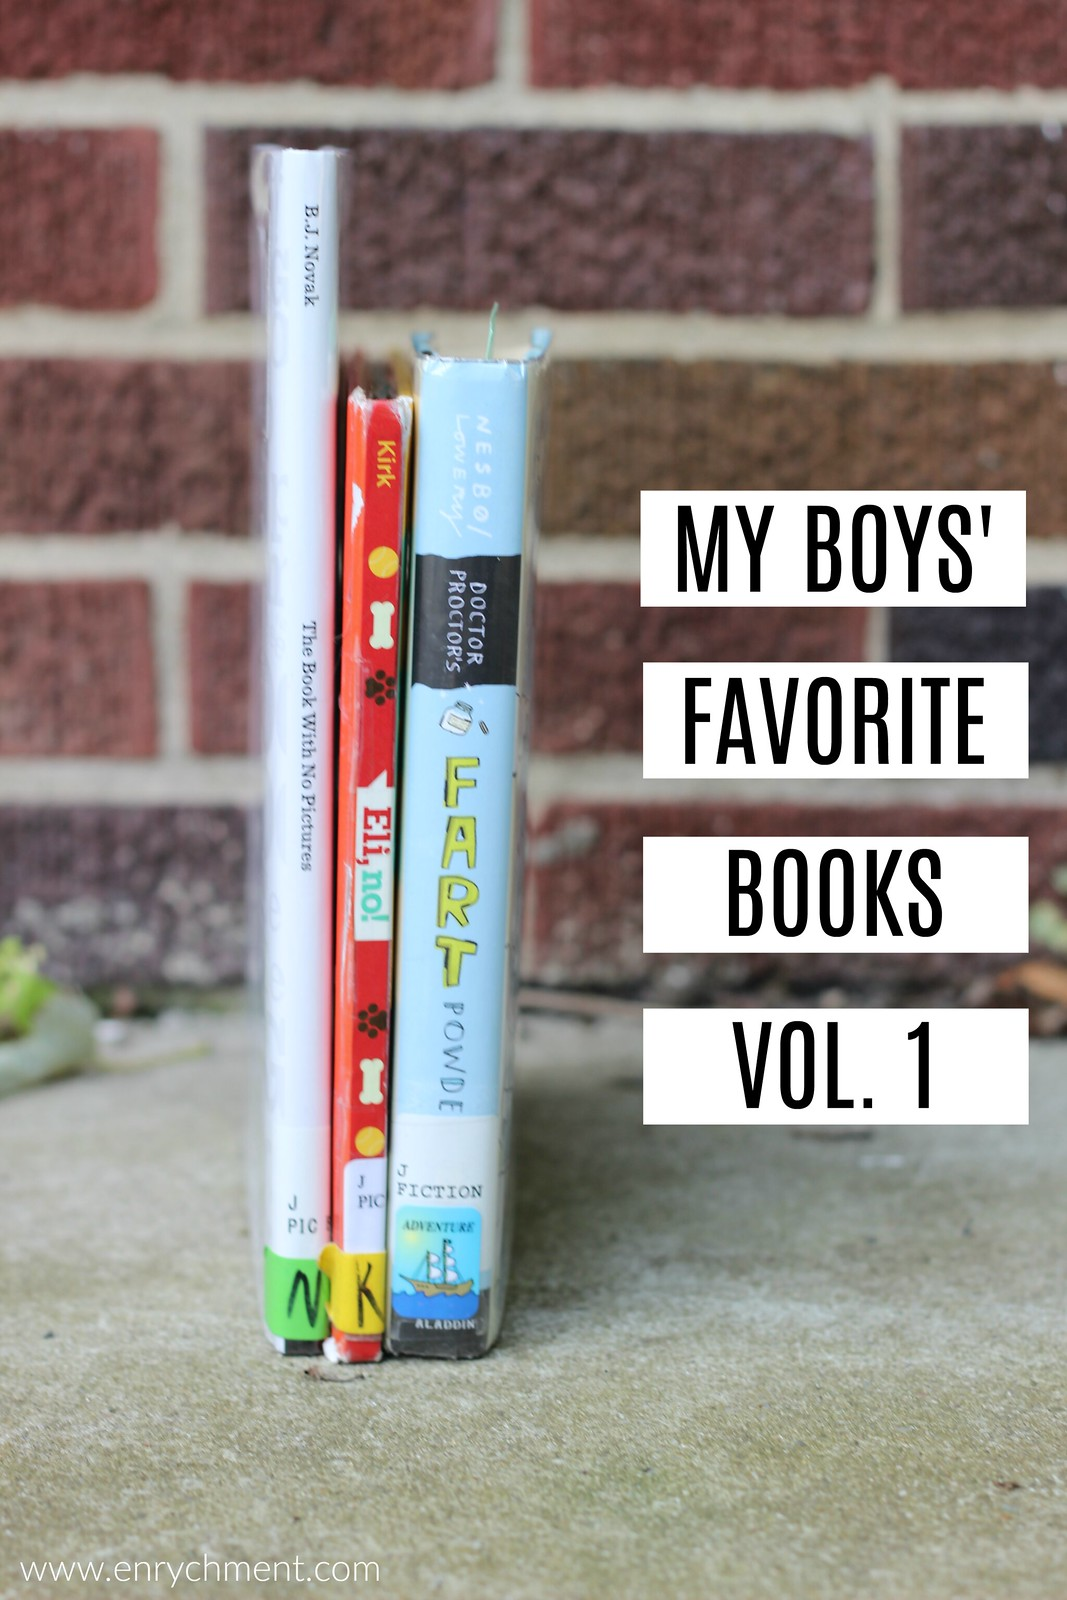 My boys' favorite books